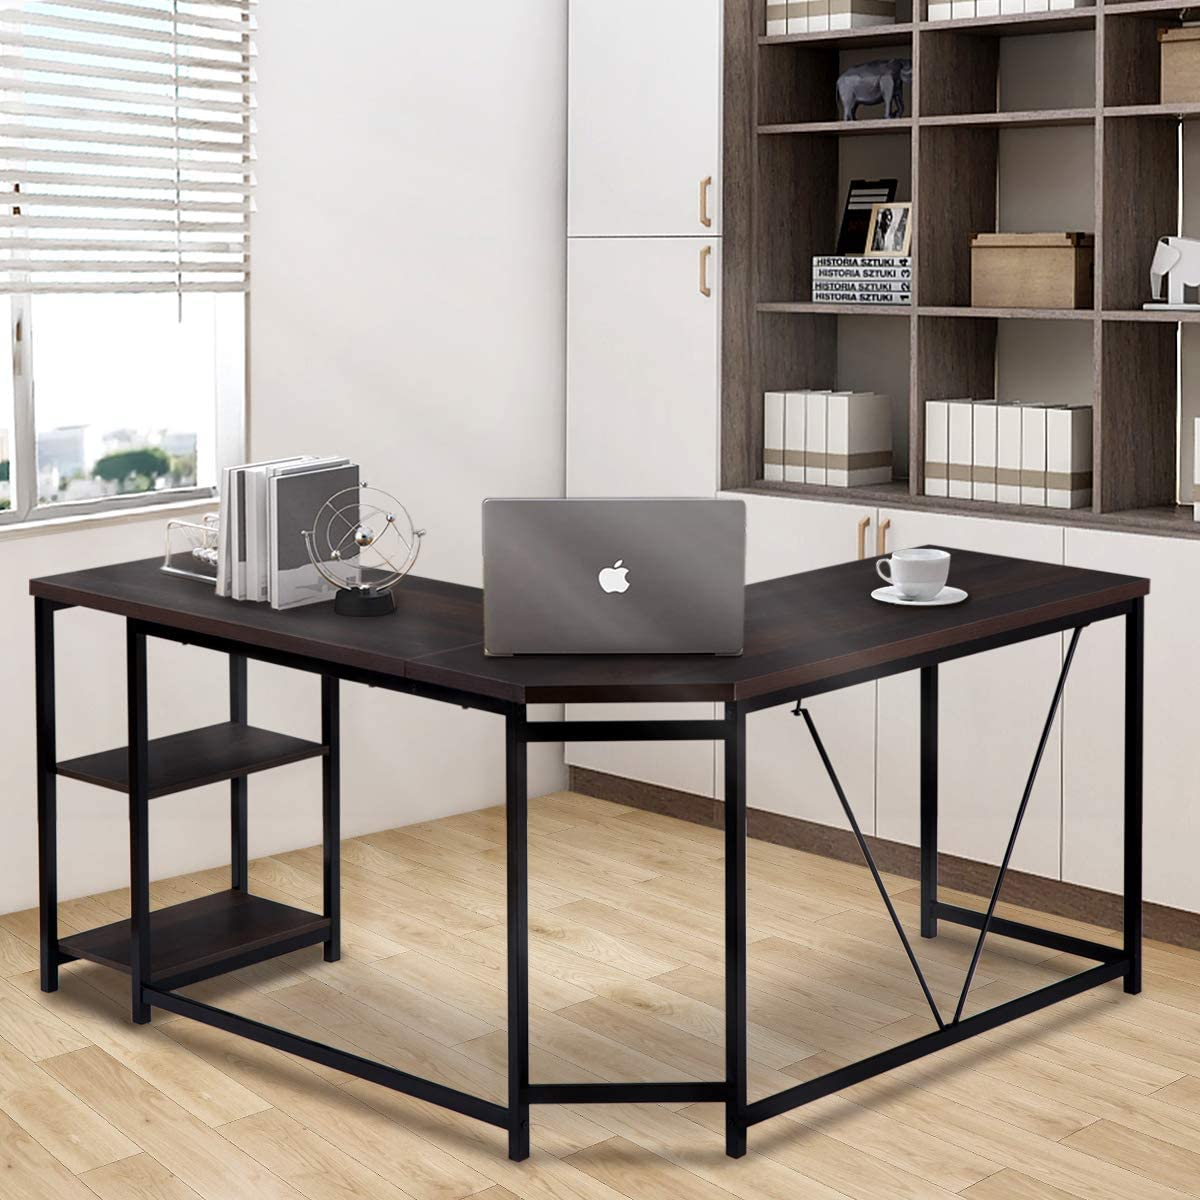 L Shaped Computer Desk with 2-Tier Home for Offi Storage Limited time shopping free shipping Shelves